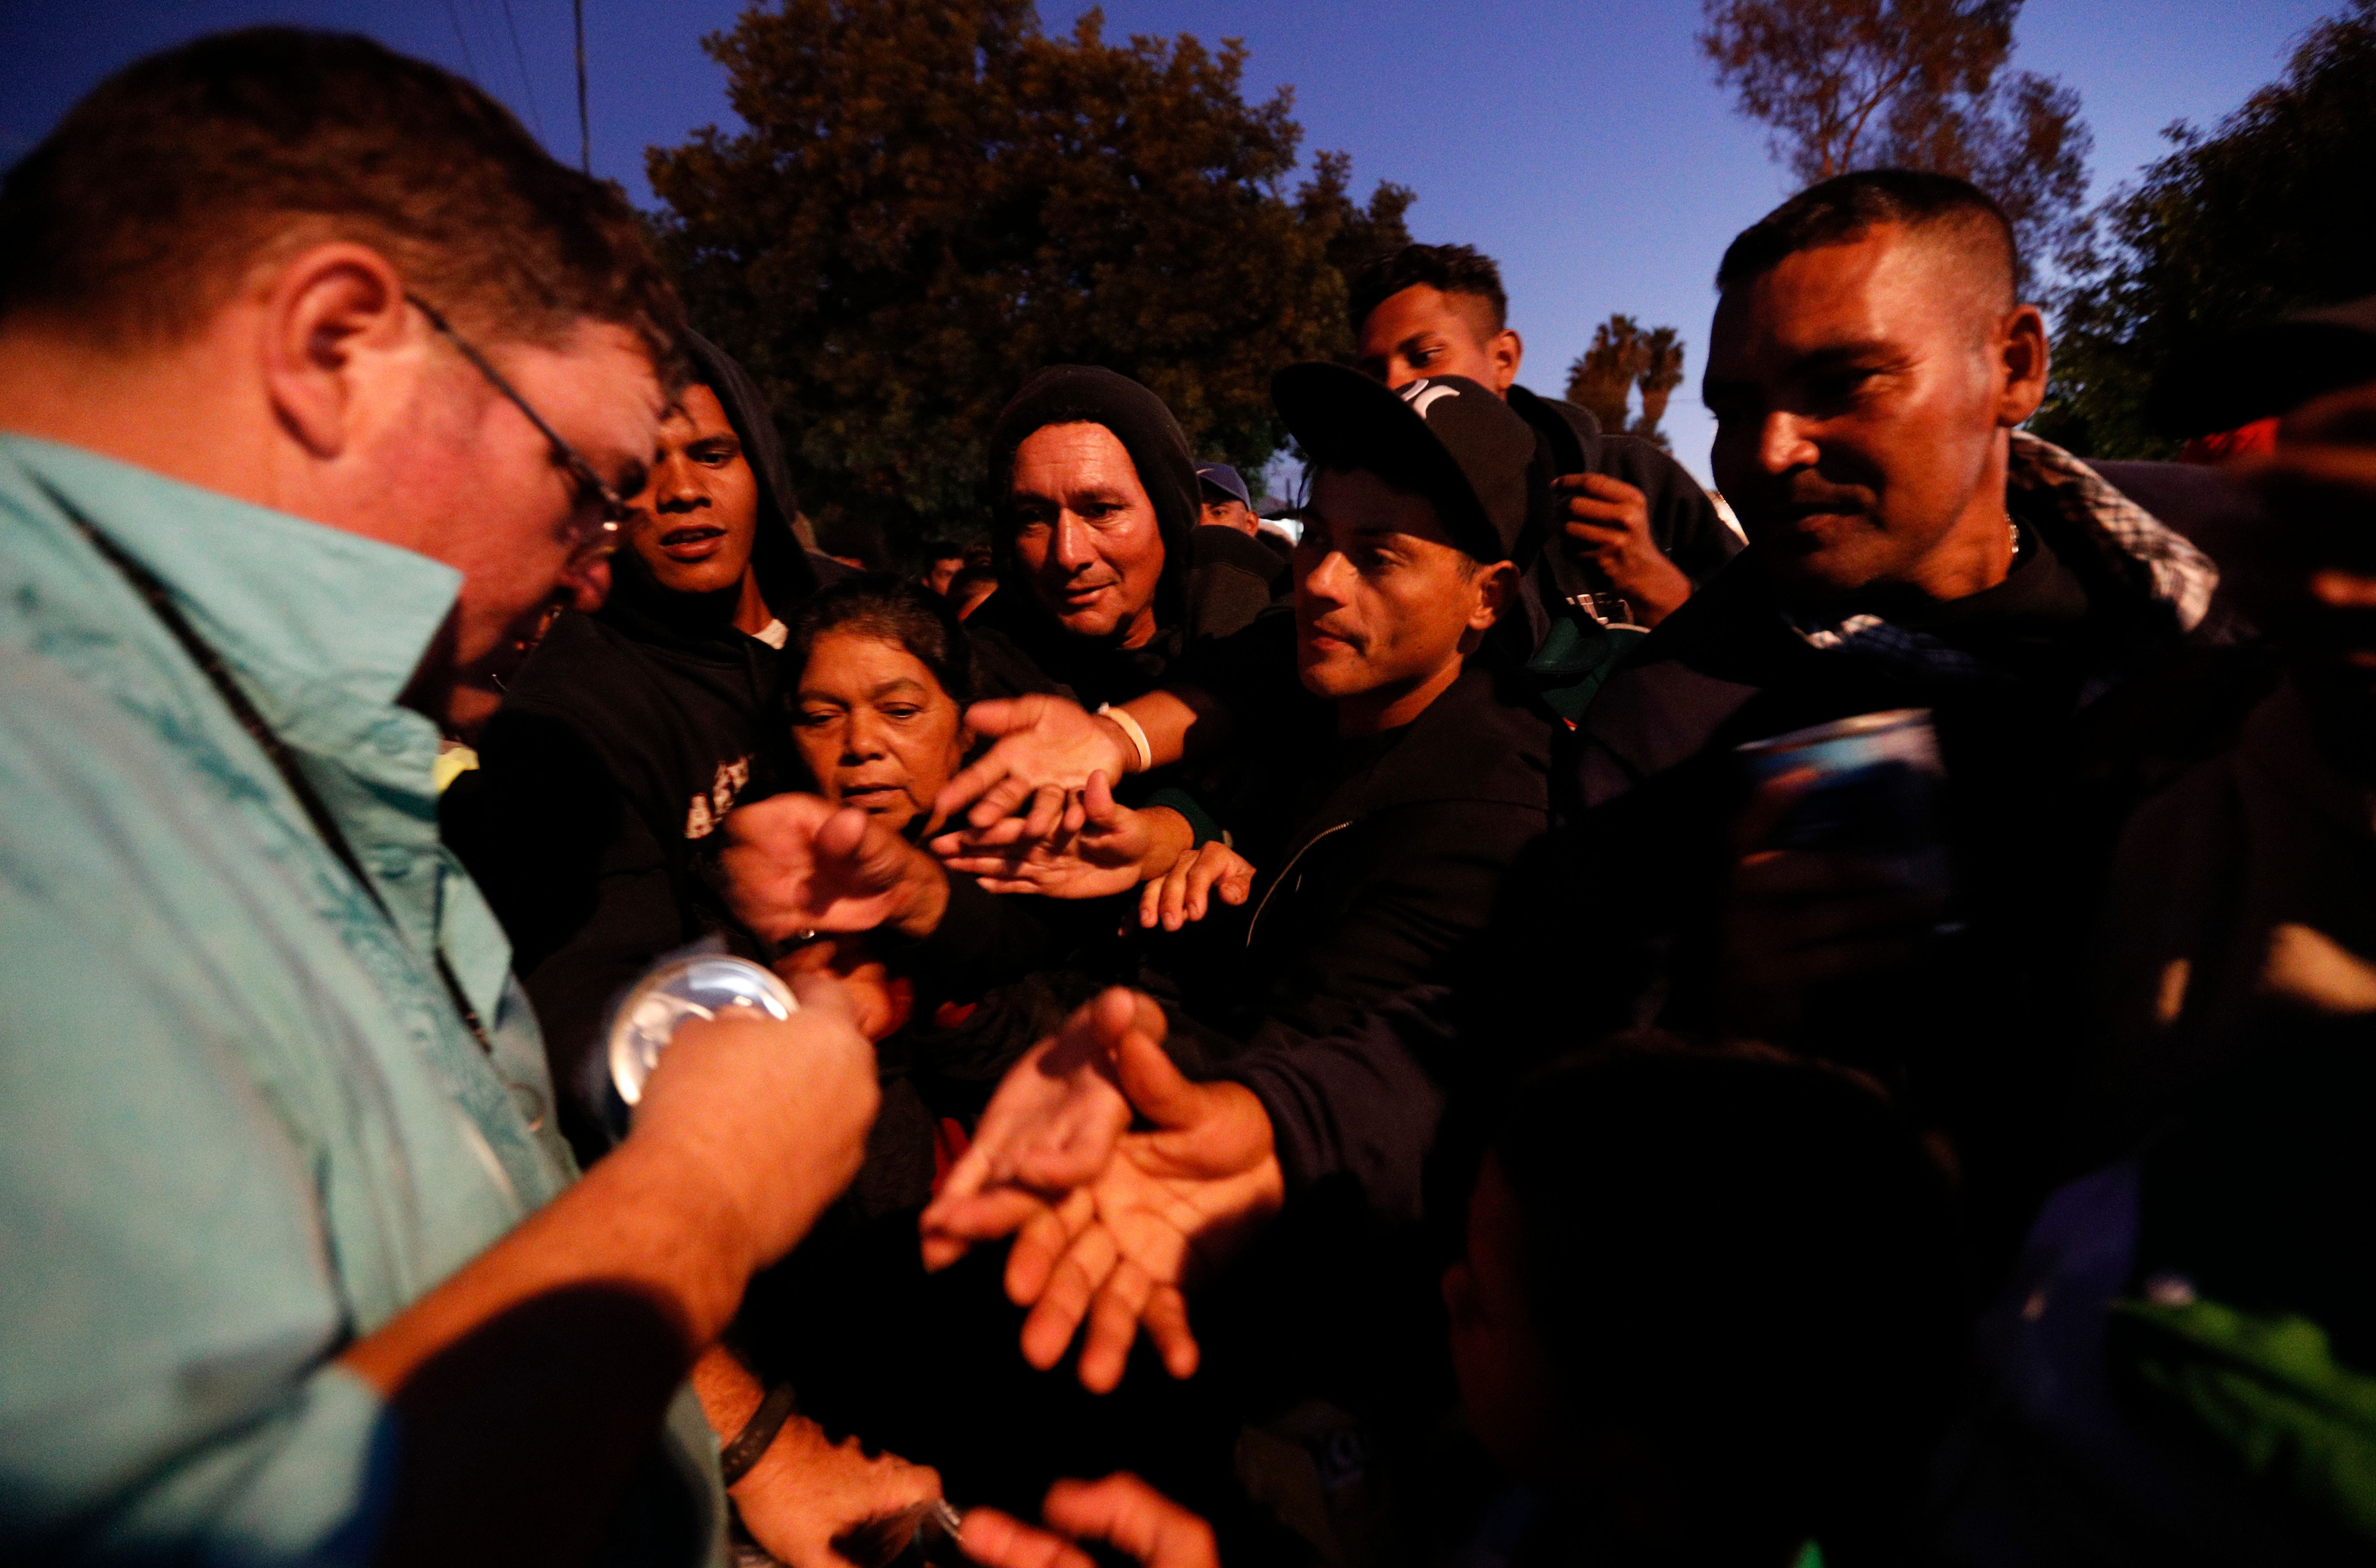 An American well-wisher, left, is swarmed by migrants as he hands out canned soup, adding his efforts to those of many local